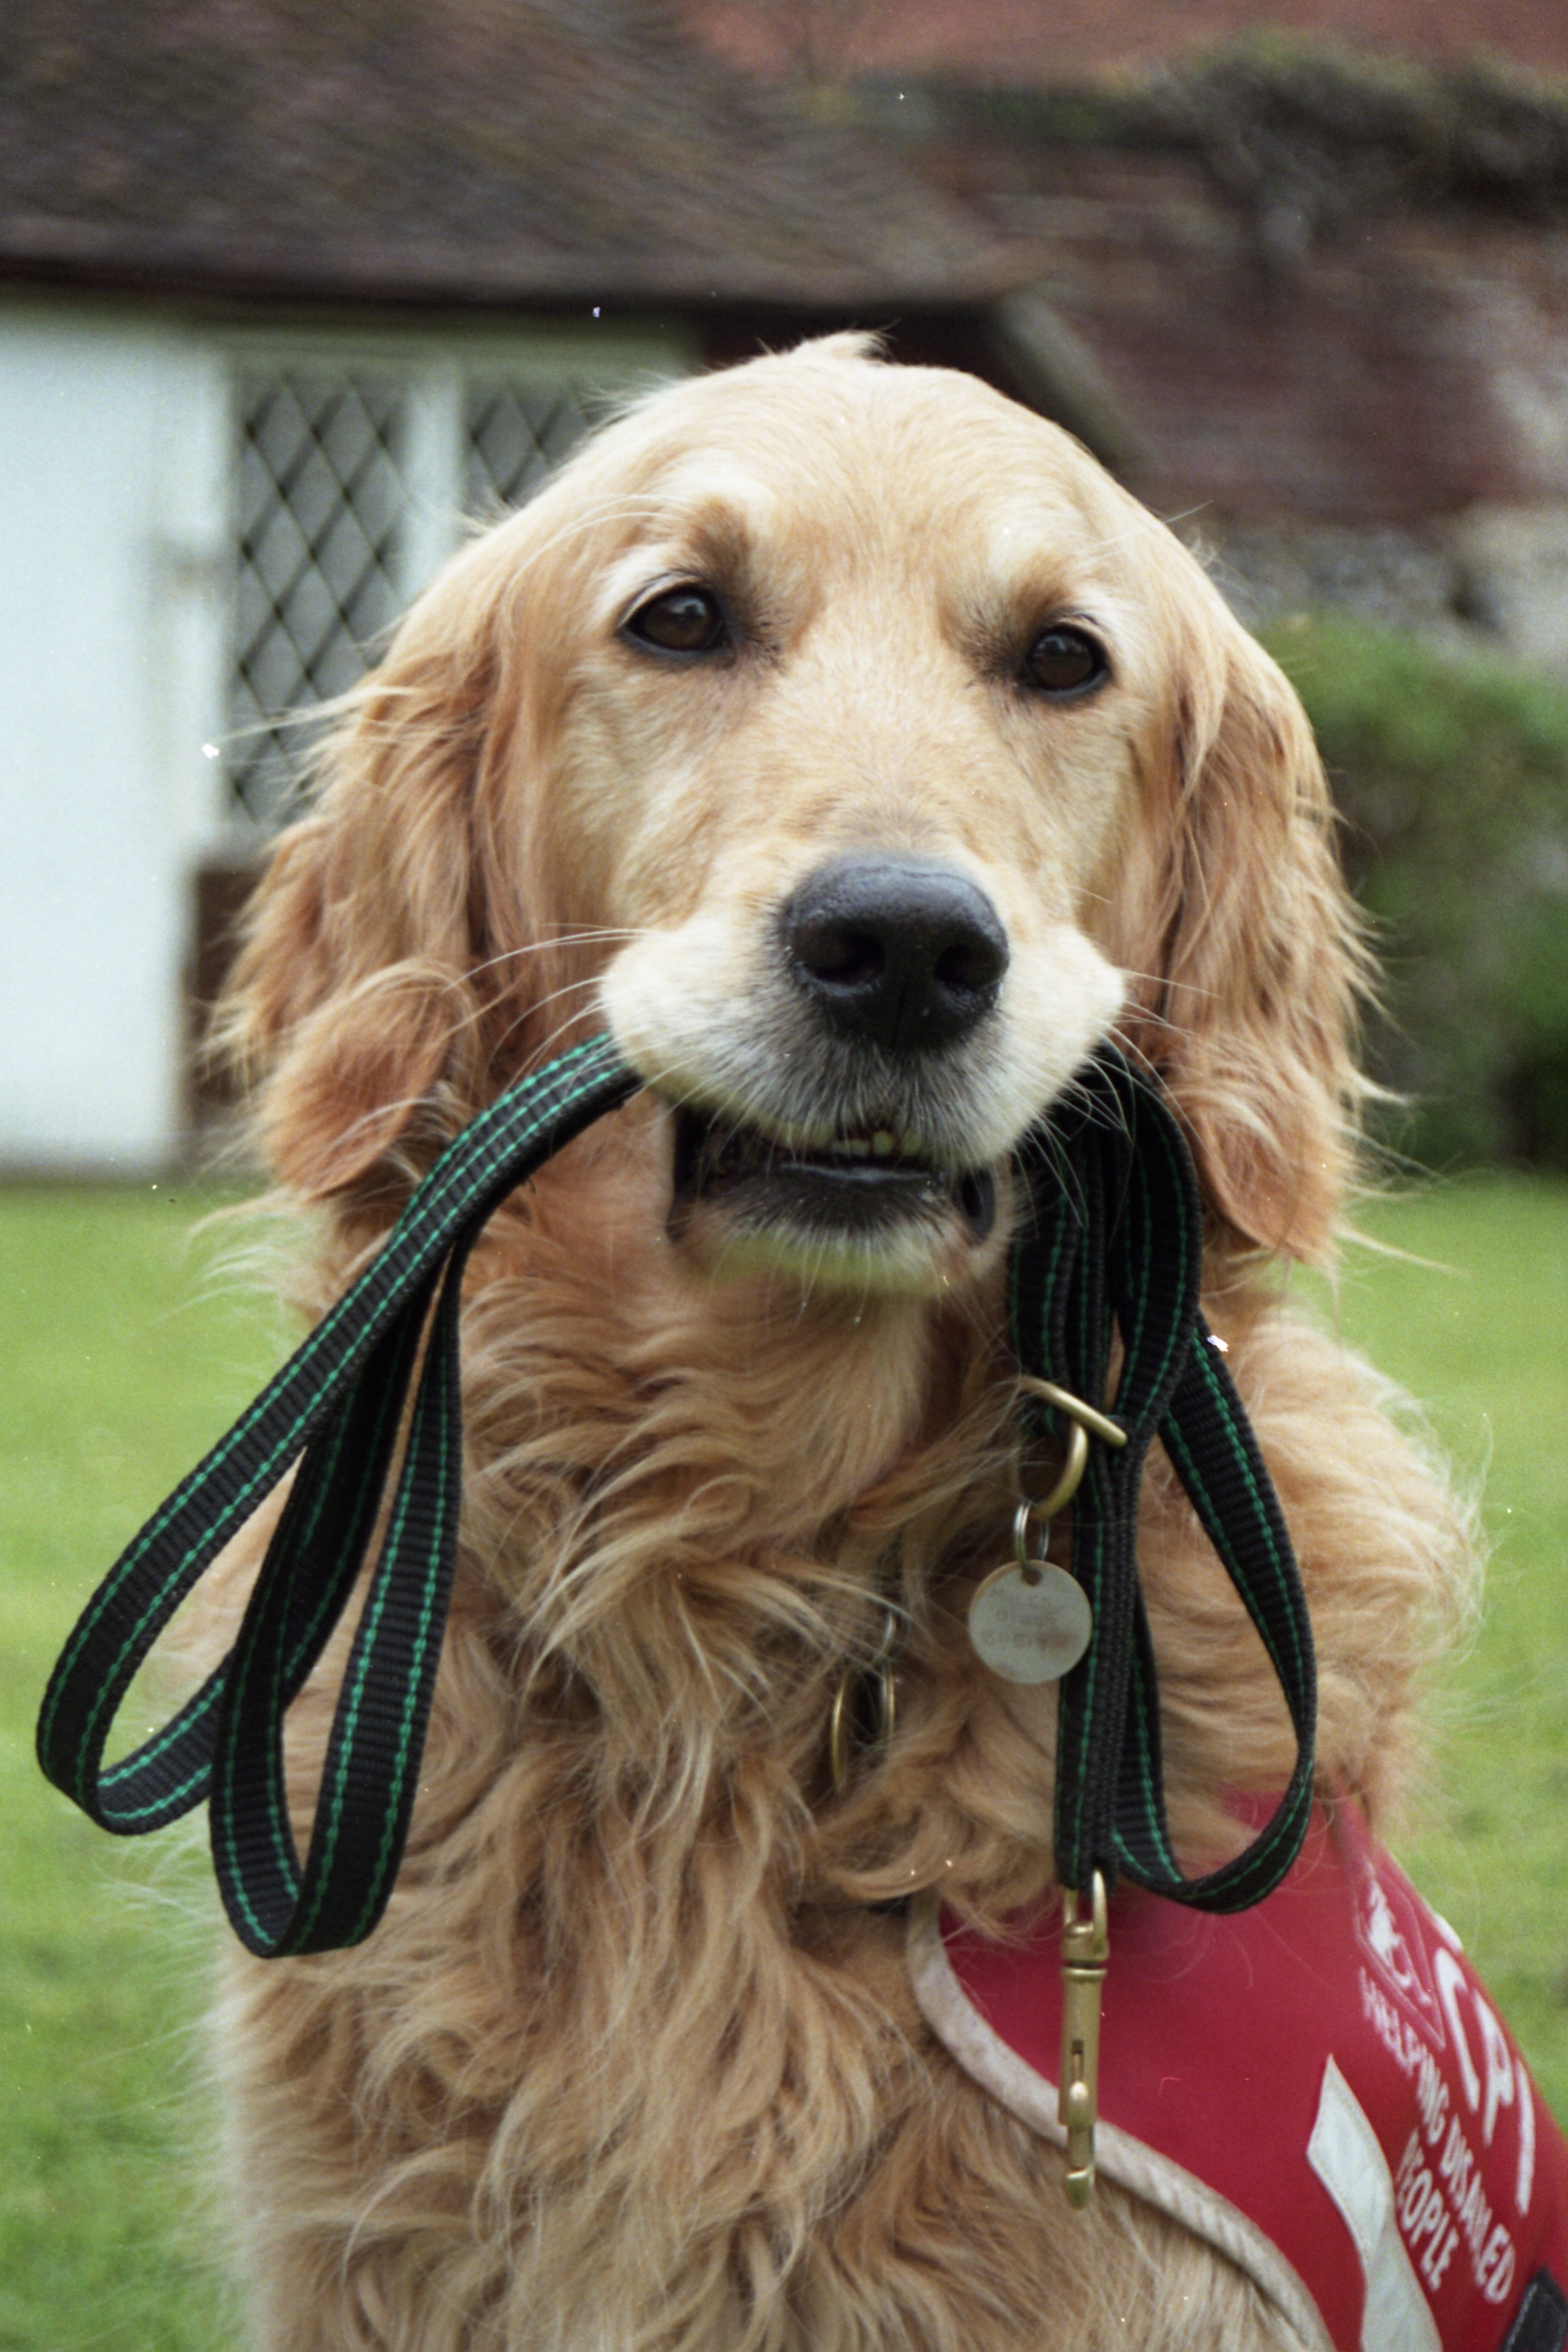 A golden retriever dog wearing the charity's original red and grey assistance dog jacket holding a lead in its mouth